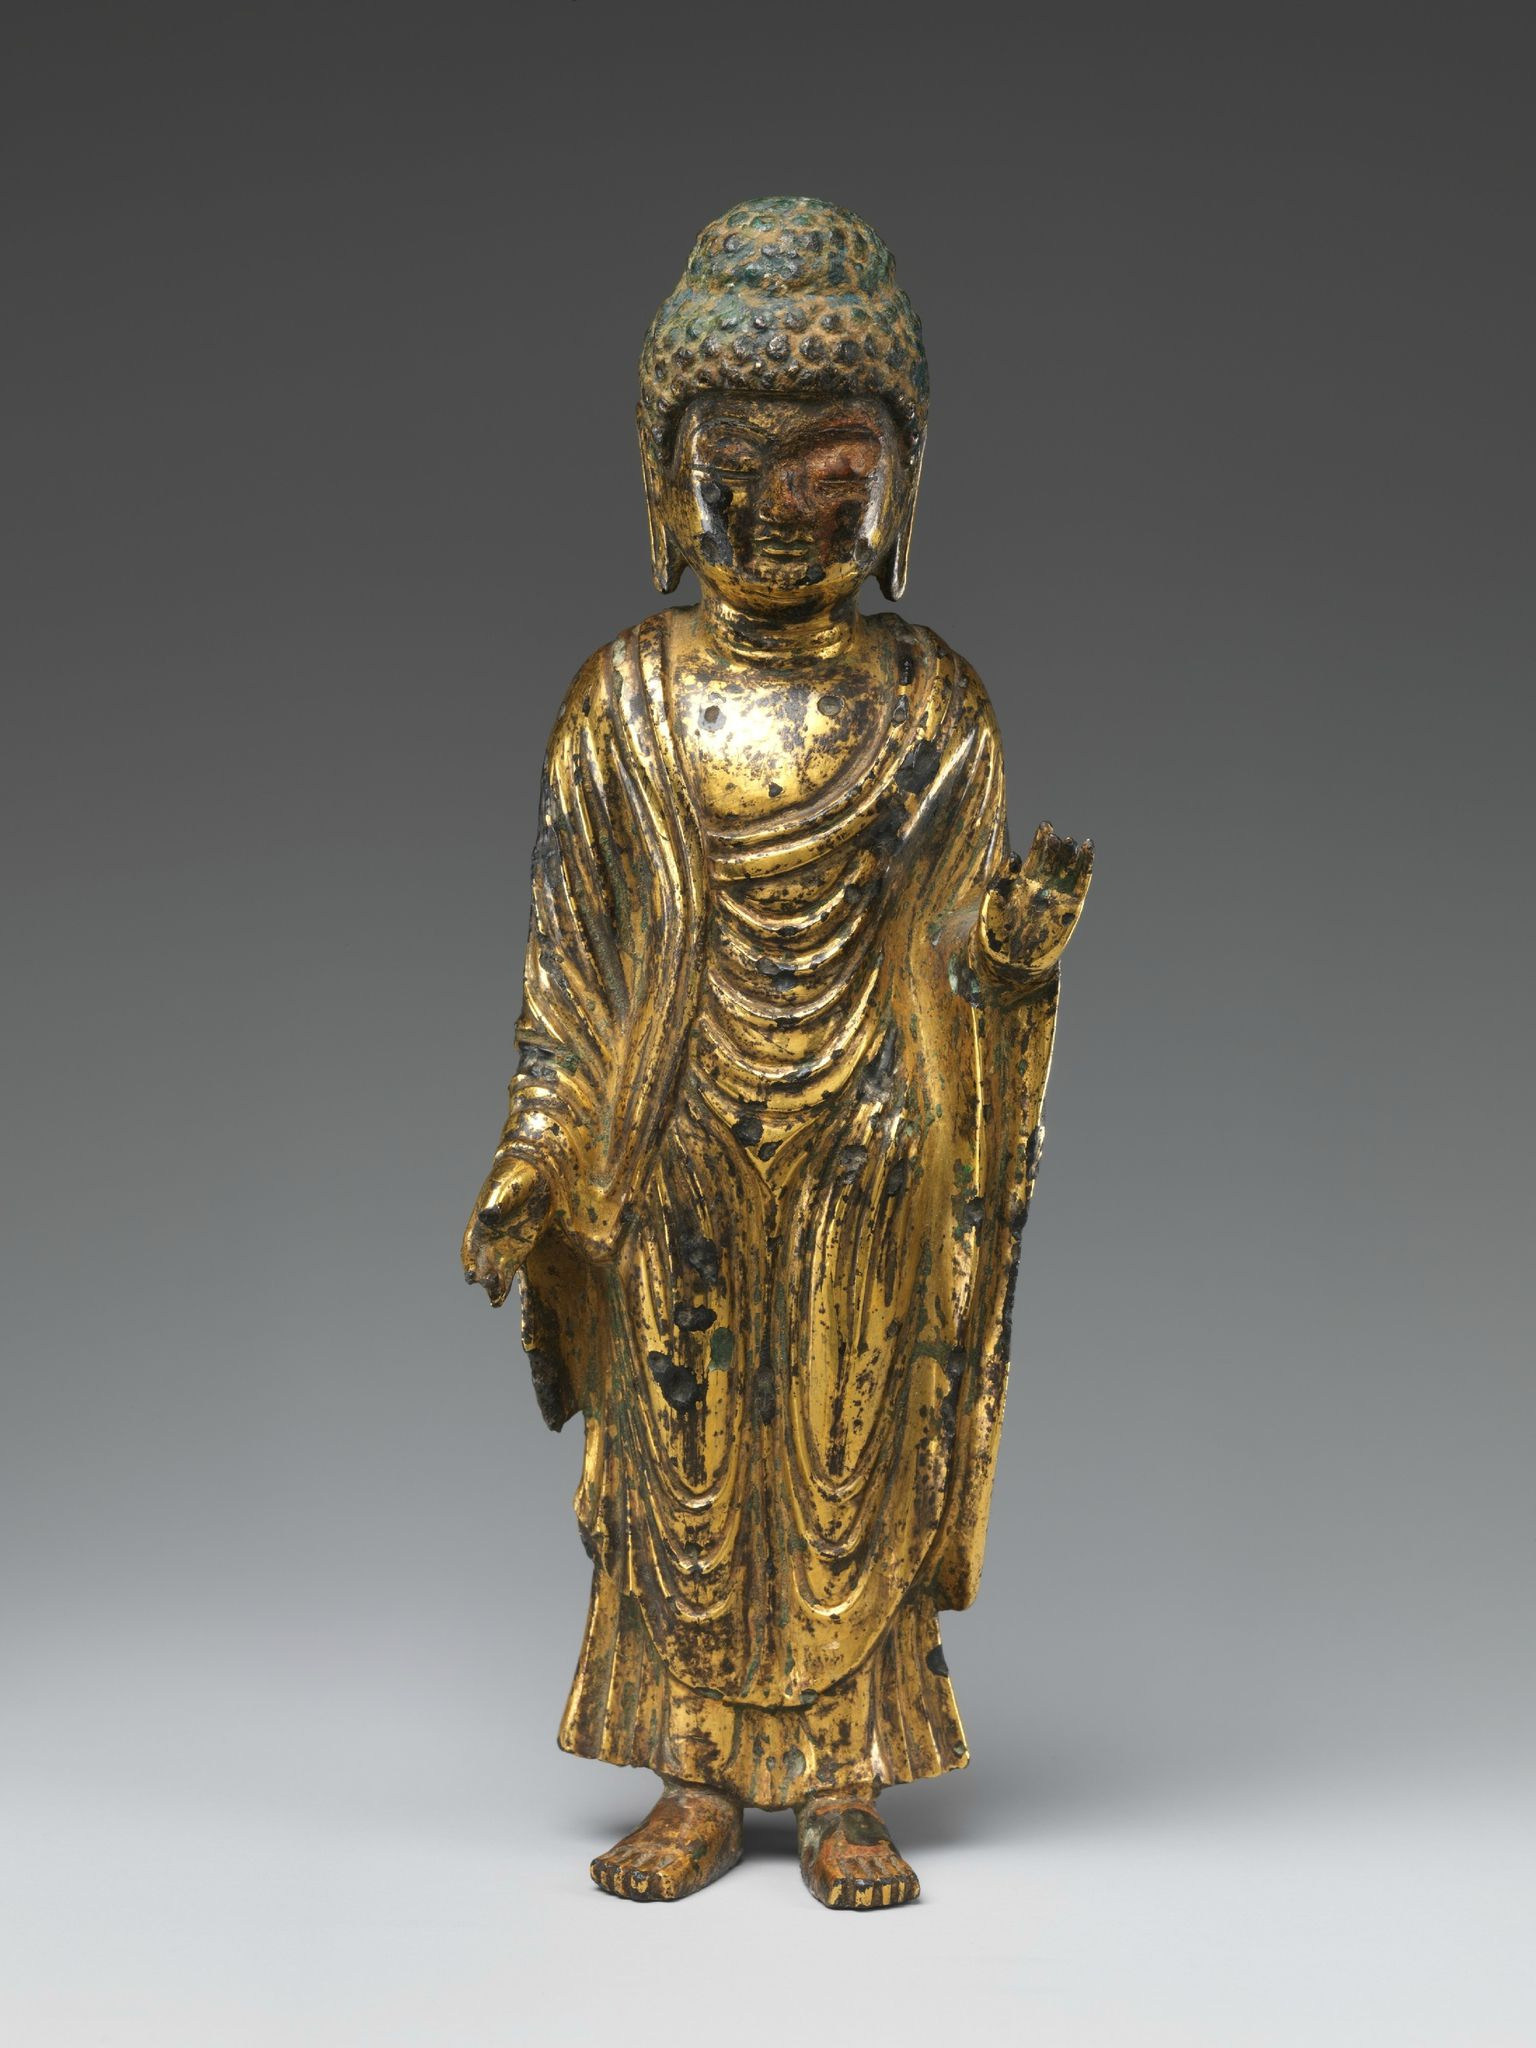 Standing Buddha, South and North Kingdoms period (668–935), Unified Silla, 8th century. Korea. Gilt bronze; H. 6 3/4 in. (17.1 cm). The Metropolitan Museum of Art, New York, Rogers Fund, 1917 (17.118.53) © 2000–2015 The Metropolitan Museum of Art.